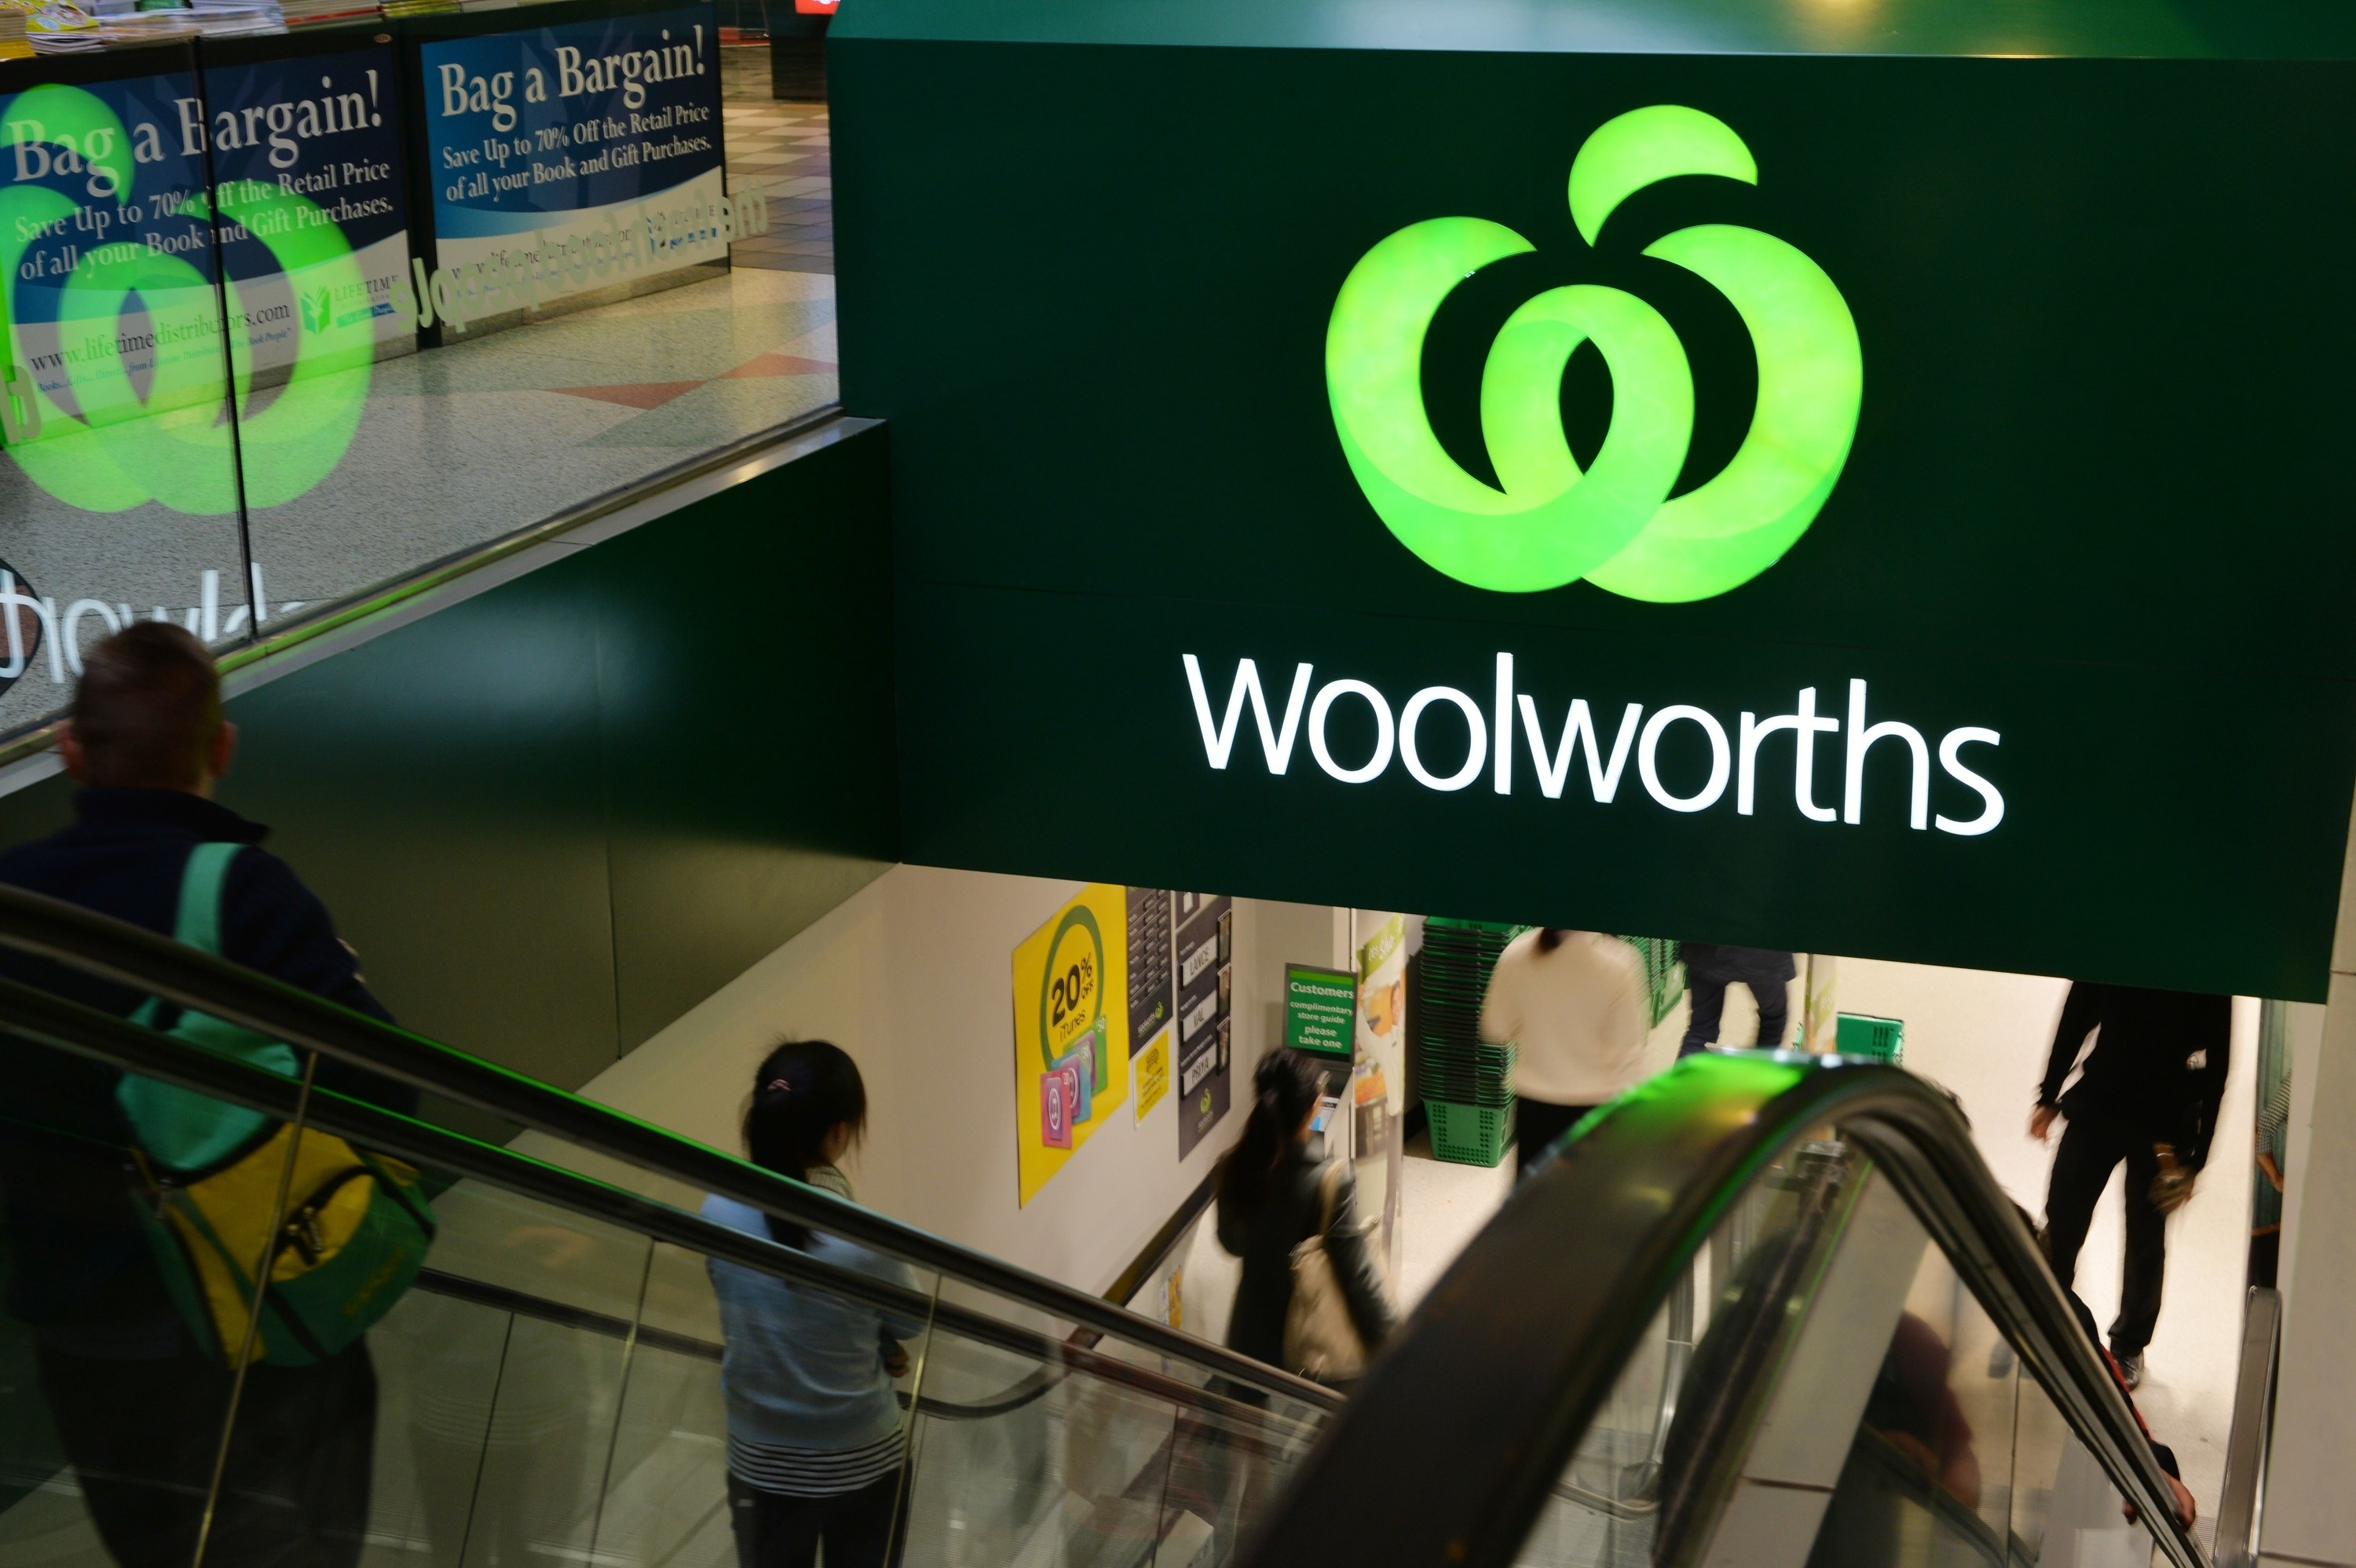 The escalator going down into an indoor Woolworths supermarket